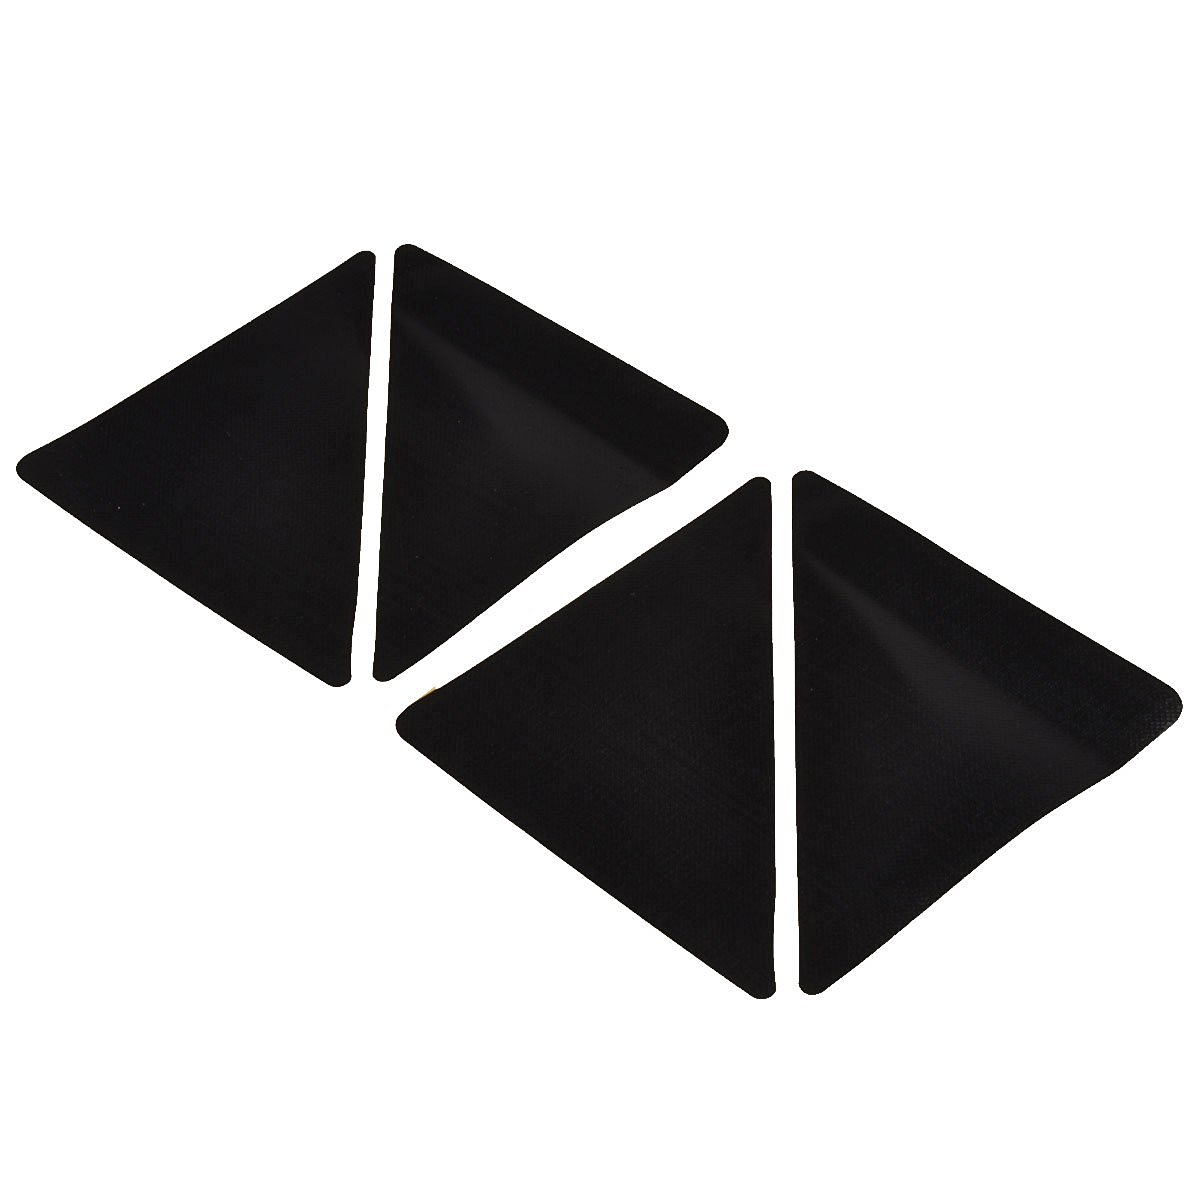 100 brand new and high quality antiskid rubber floor carpet mat rug gripper stopper sticker triangle shaped appearance design simple and practical